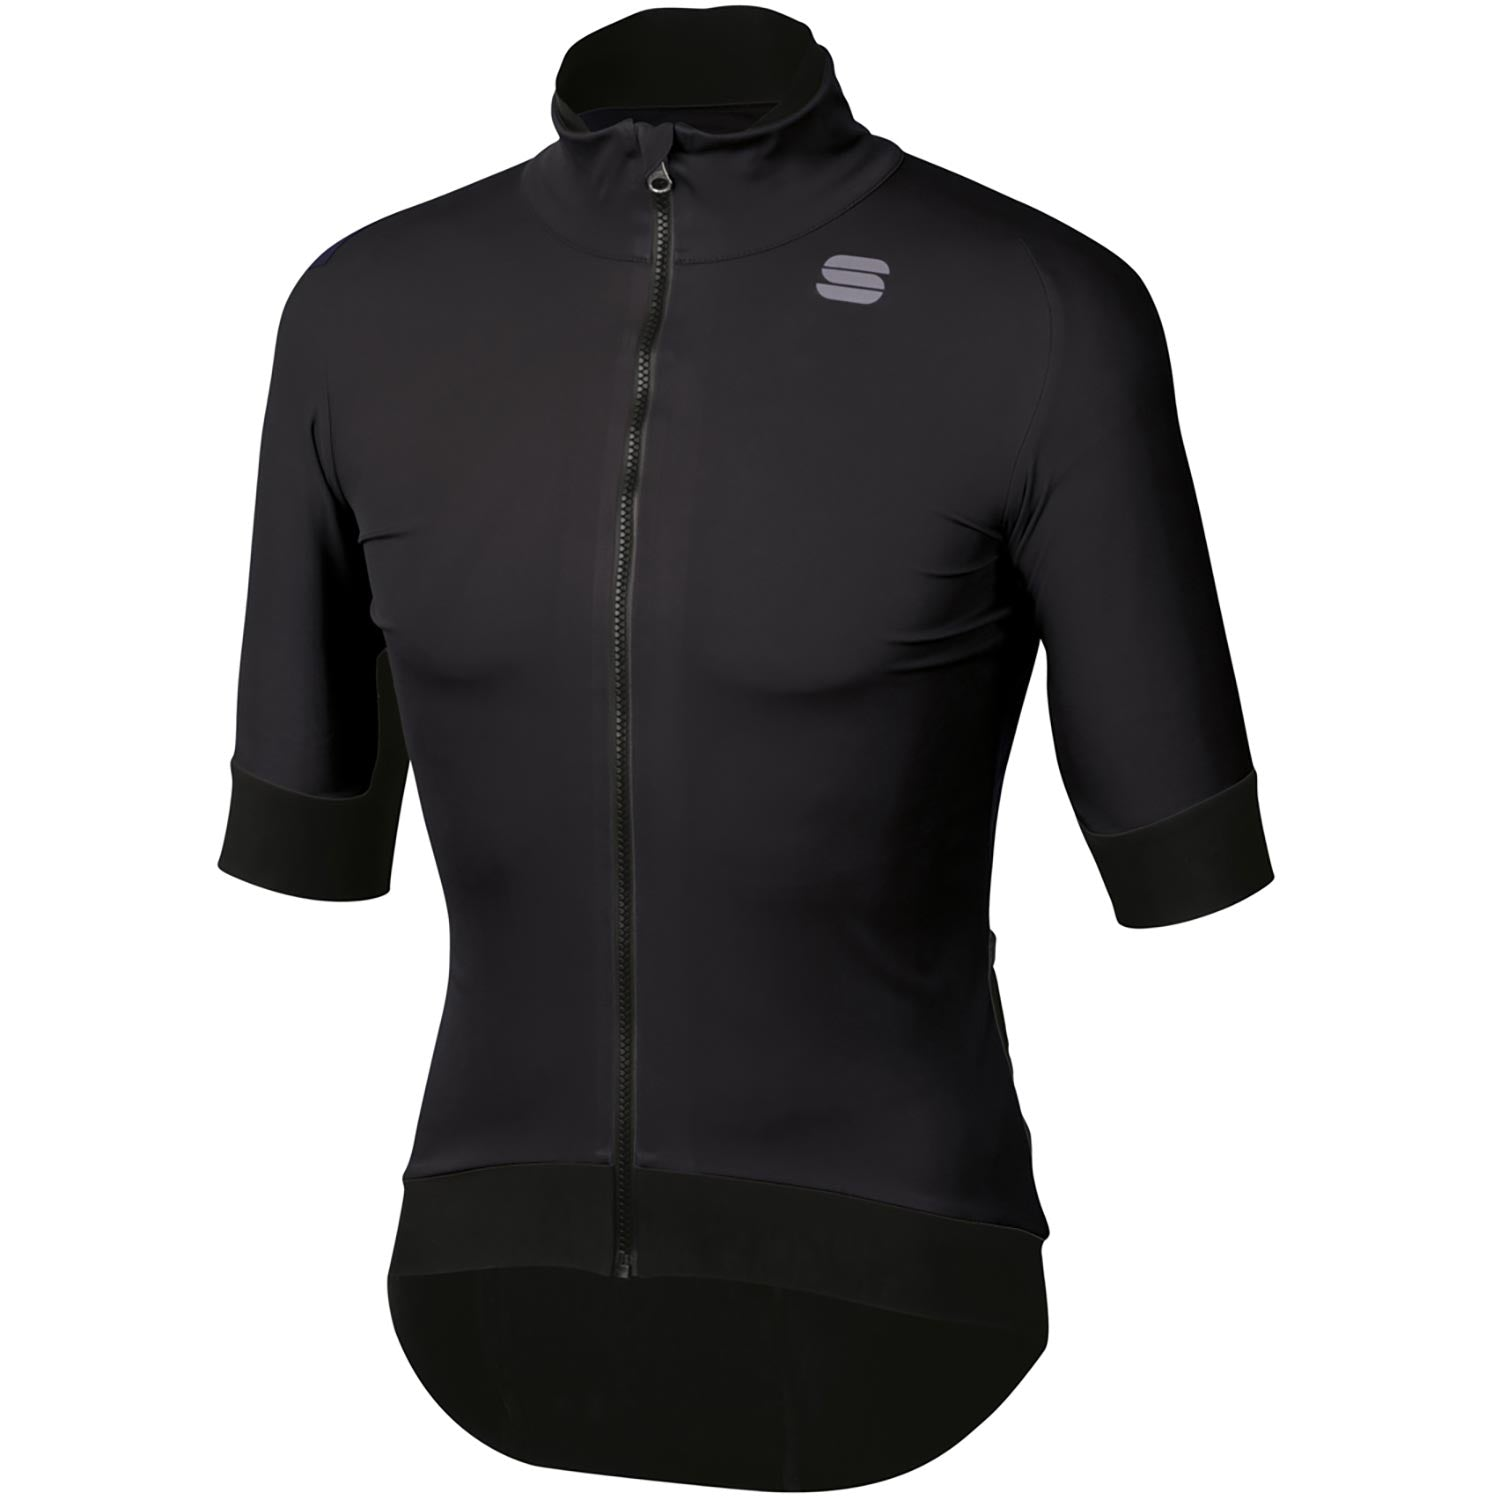 Sportful-Sportful Fiandre Pro Short Sleeve Jacket-Black-S-SF195010022-saddleback-elite-performance-cycling